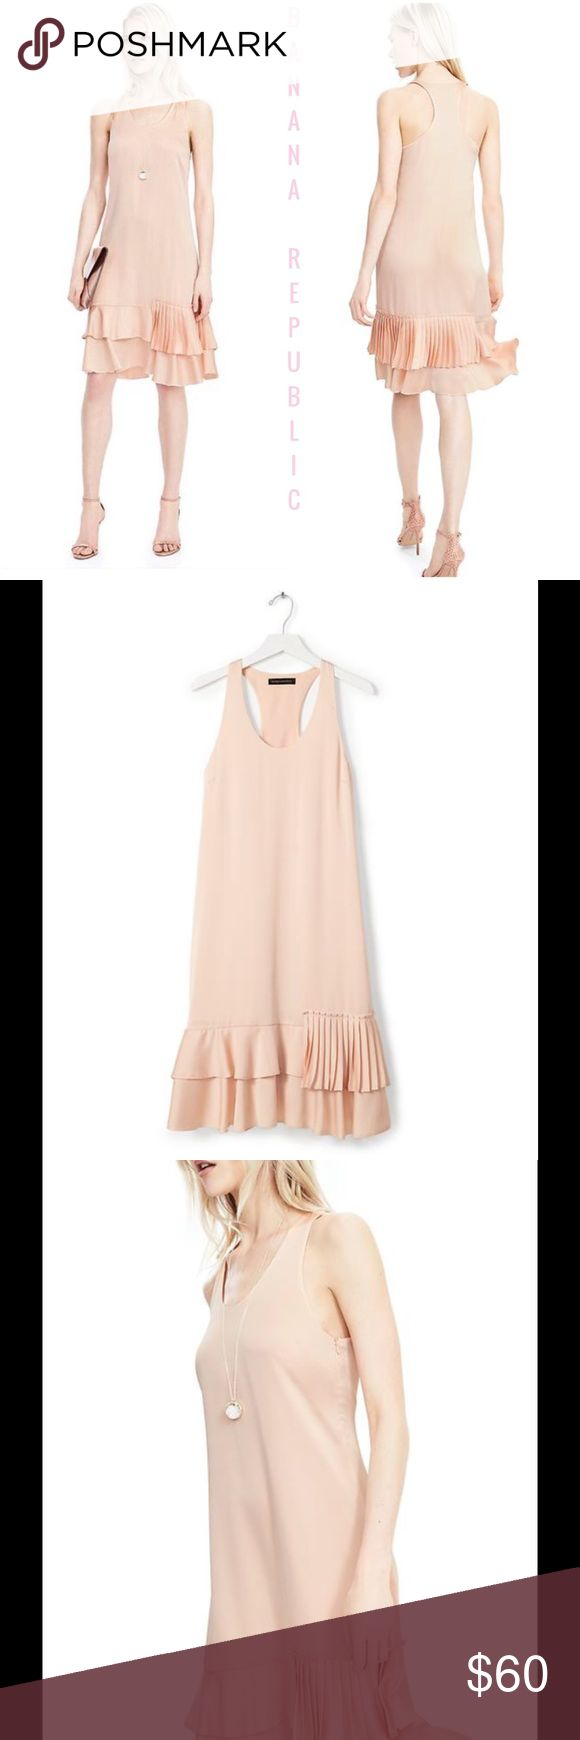 """🆕 Banana Republic Tiered Ruffle Dress ! 💞🎀 Banana Republic Tiered - Ruffle Drop Waist Dress ! 100% polyester ! Beautiful color called """" Blush """" ! Length about 35"""" ! Hits at knee ! Side hidden 15"""" zipper ! Completely lined in same color ! In package ! Gorgeous ! 🎀💞 Banana Republic Dresses"""